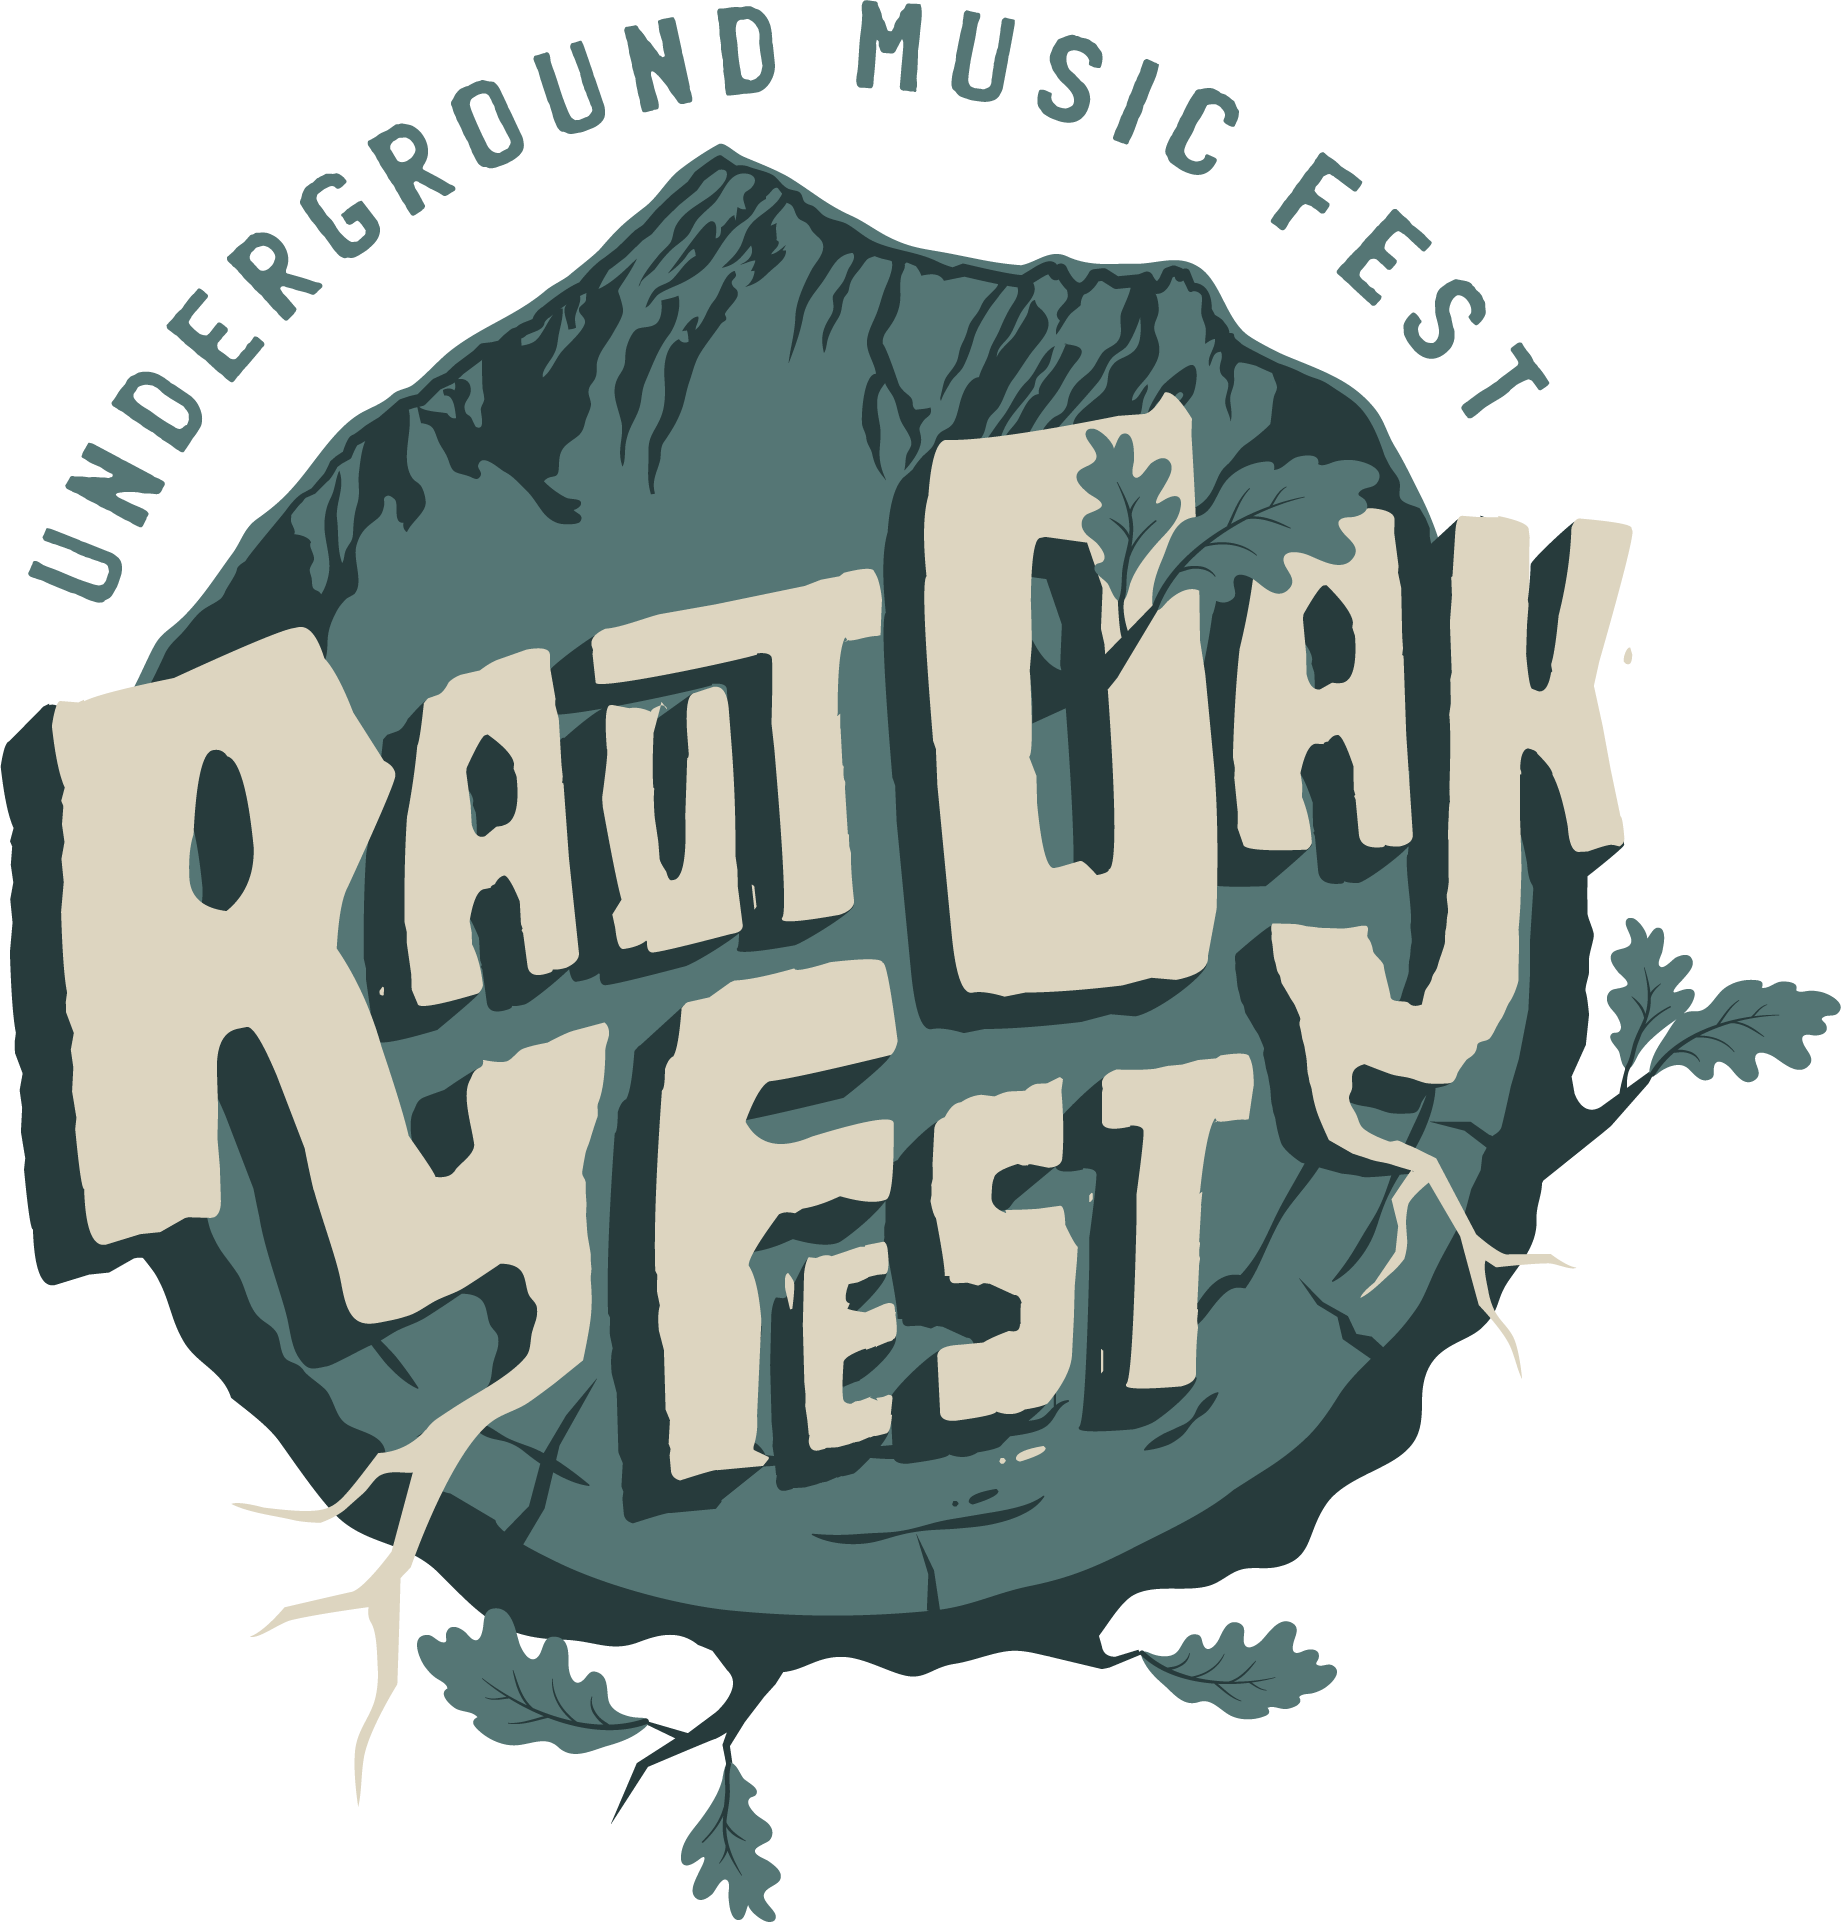 Shop Raut Oak Fest